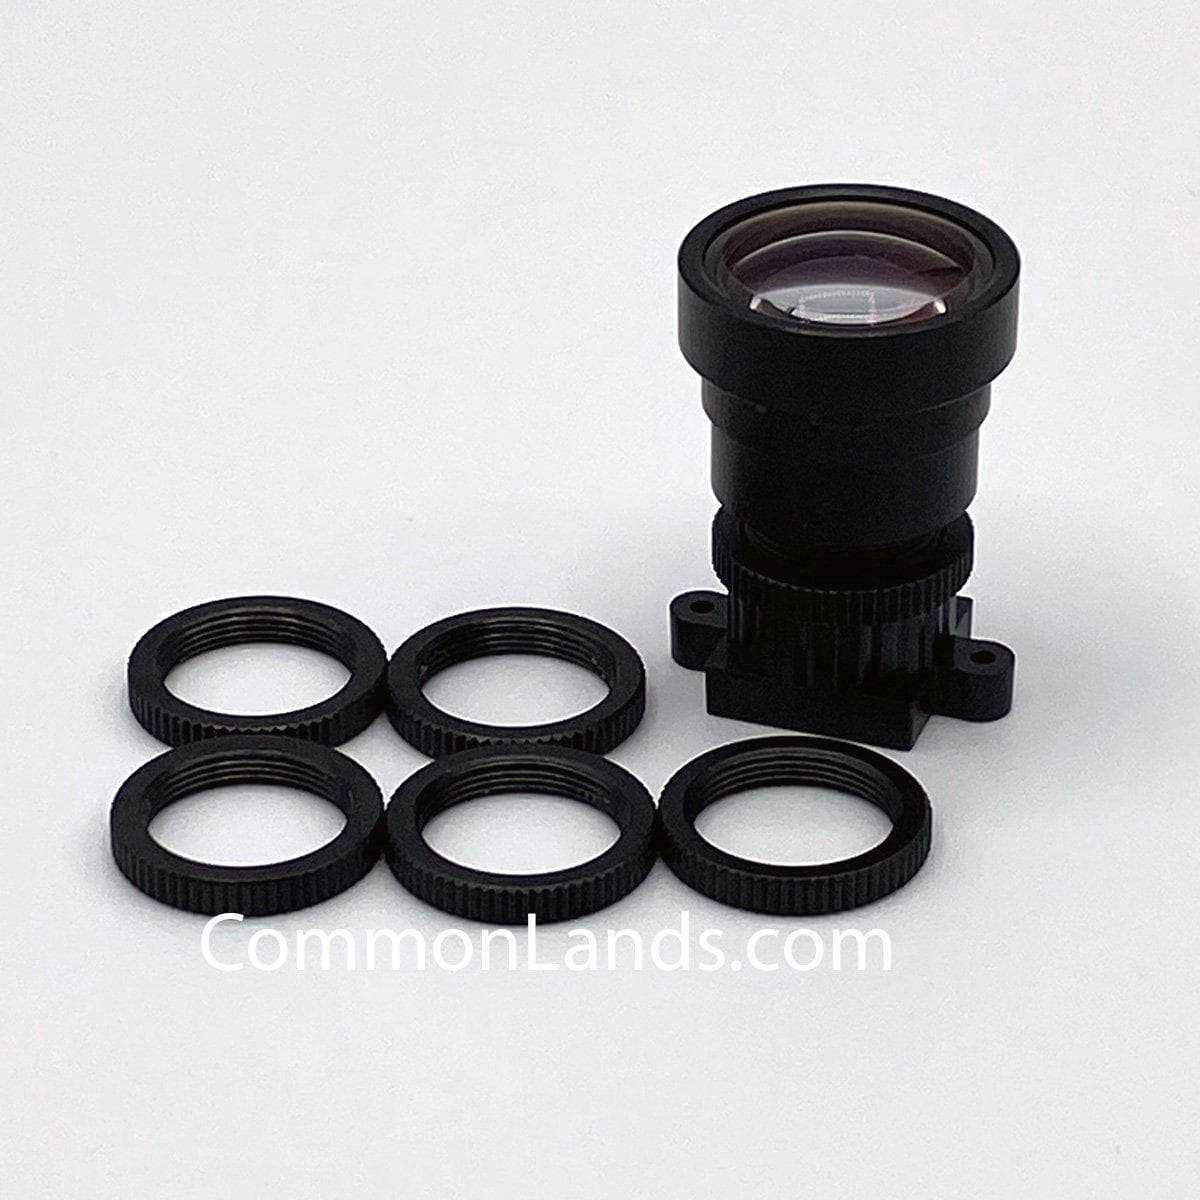 M12 Lens Holder Focus Lock Nut Ring